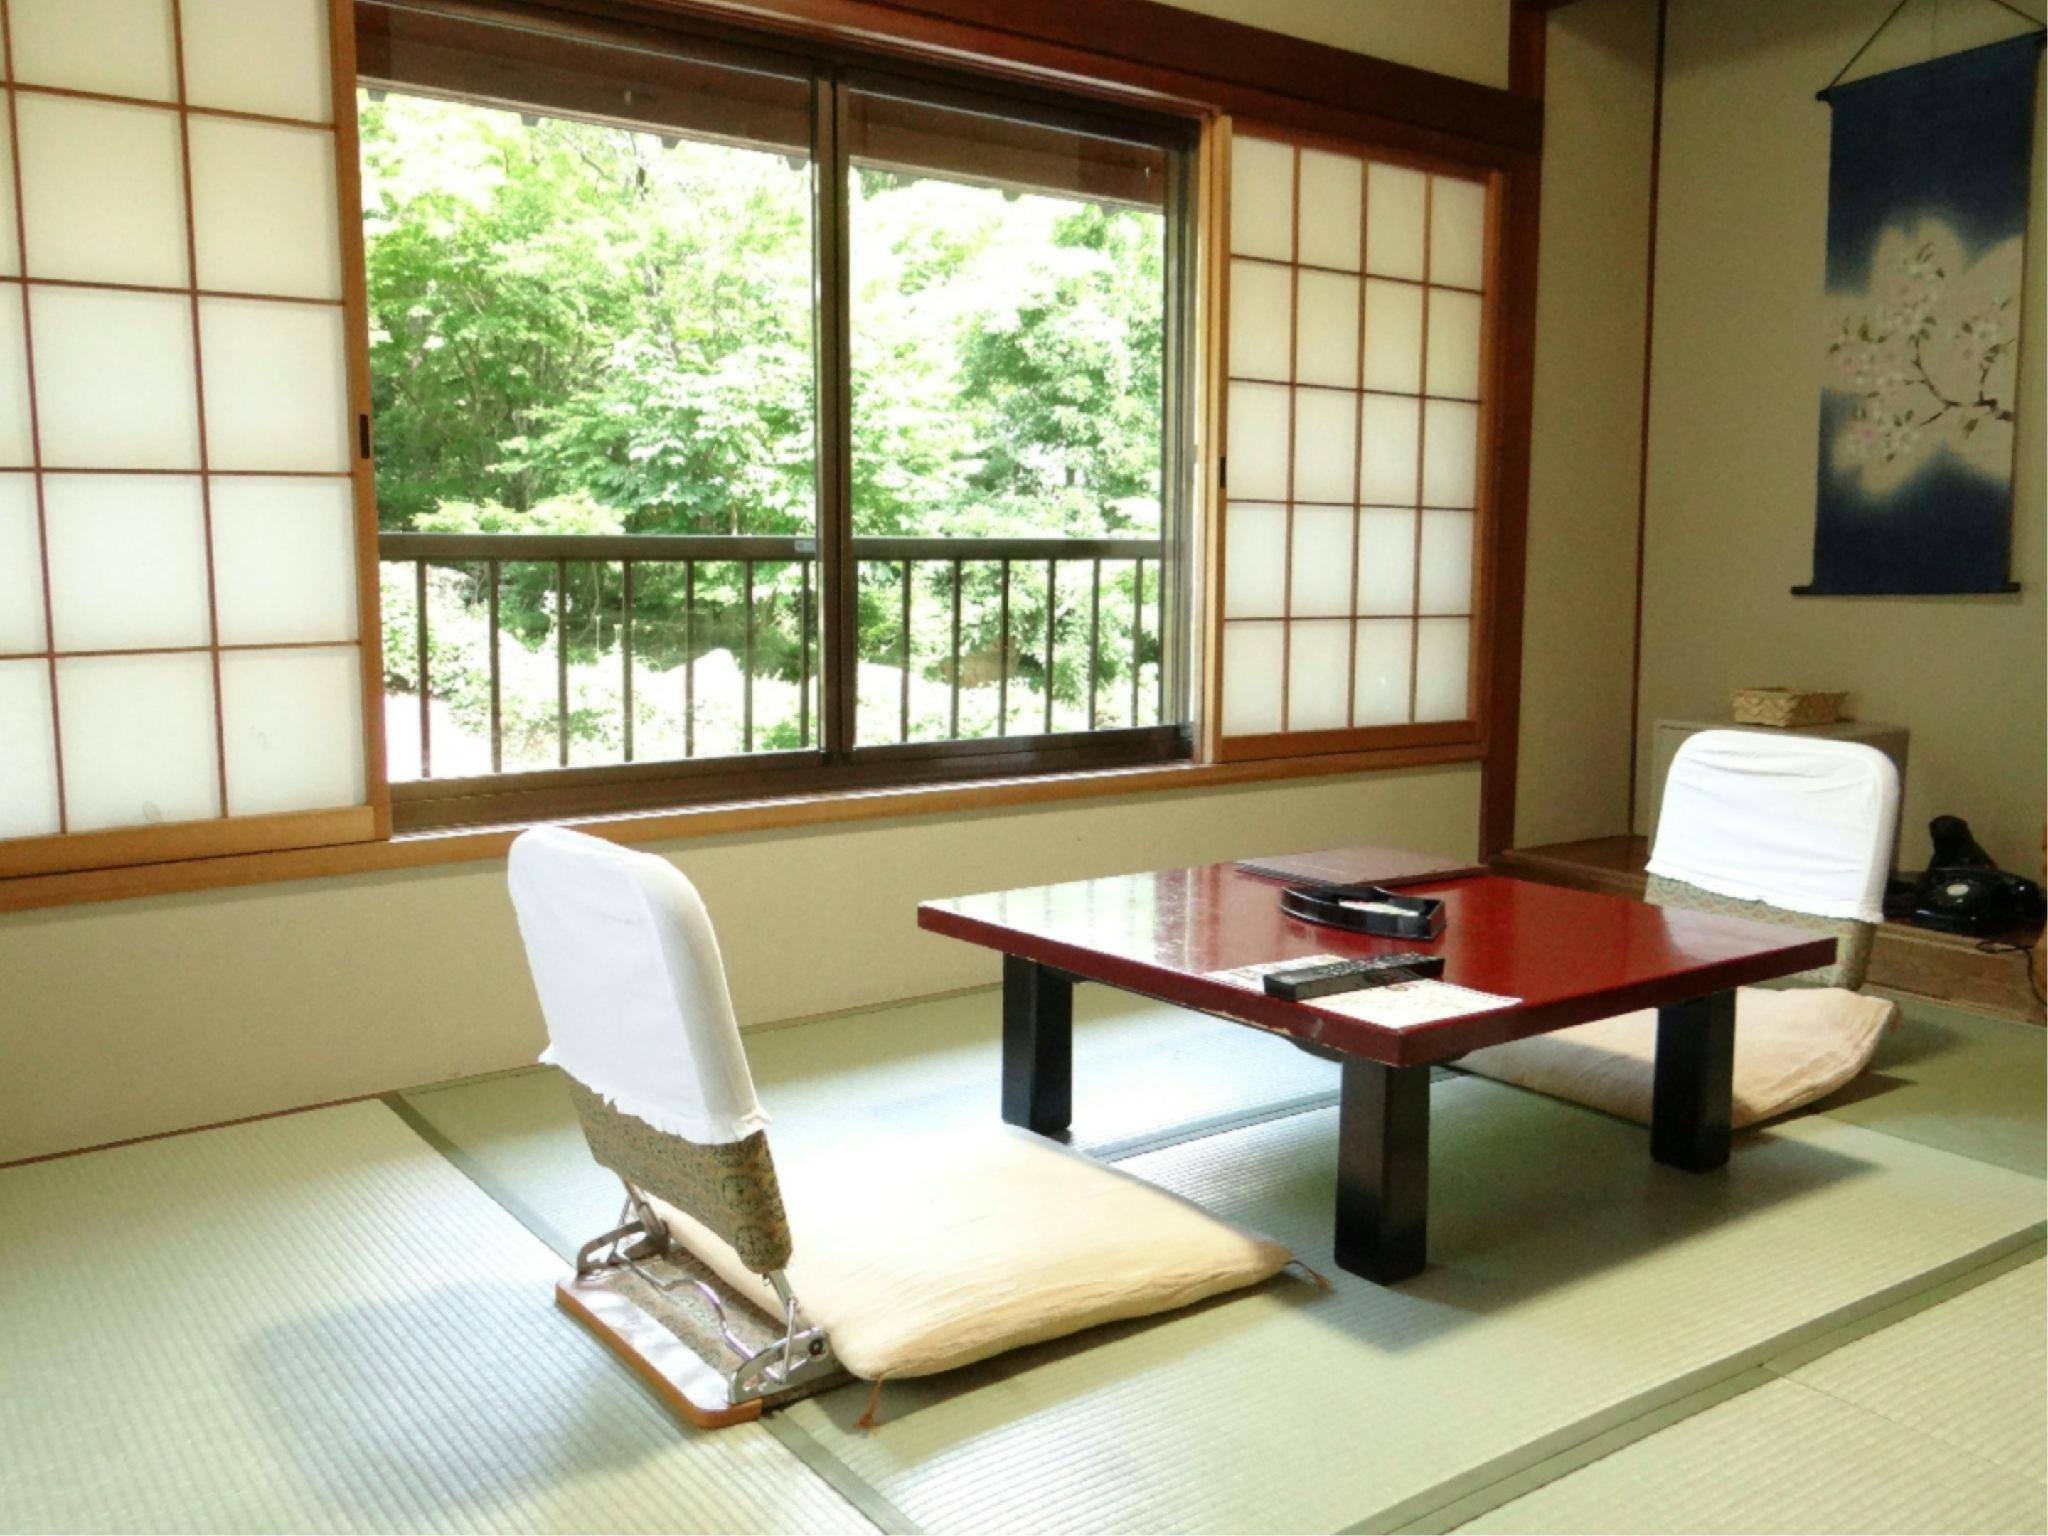 第一别馆 和式房(无浴室厕所) (Japanese-style Room (Annex No. 1) *No bath or toilet in room)